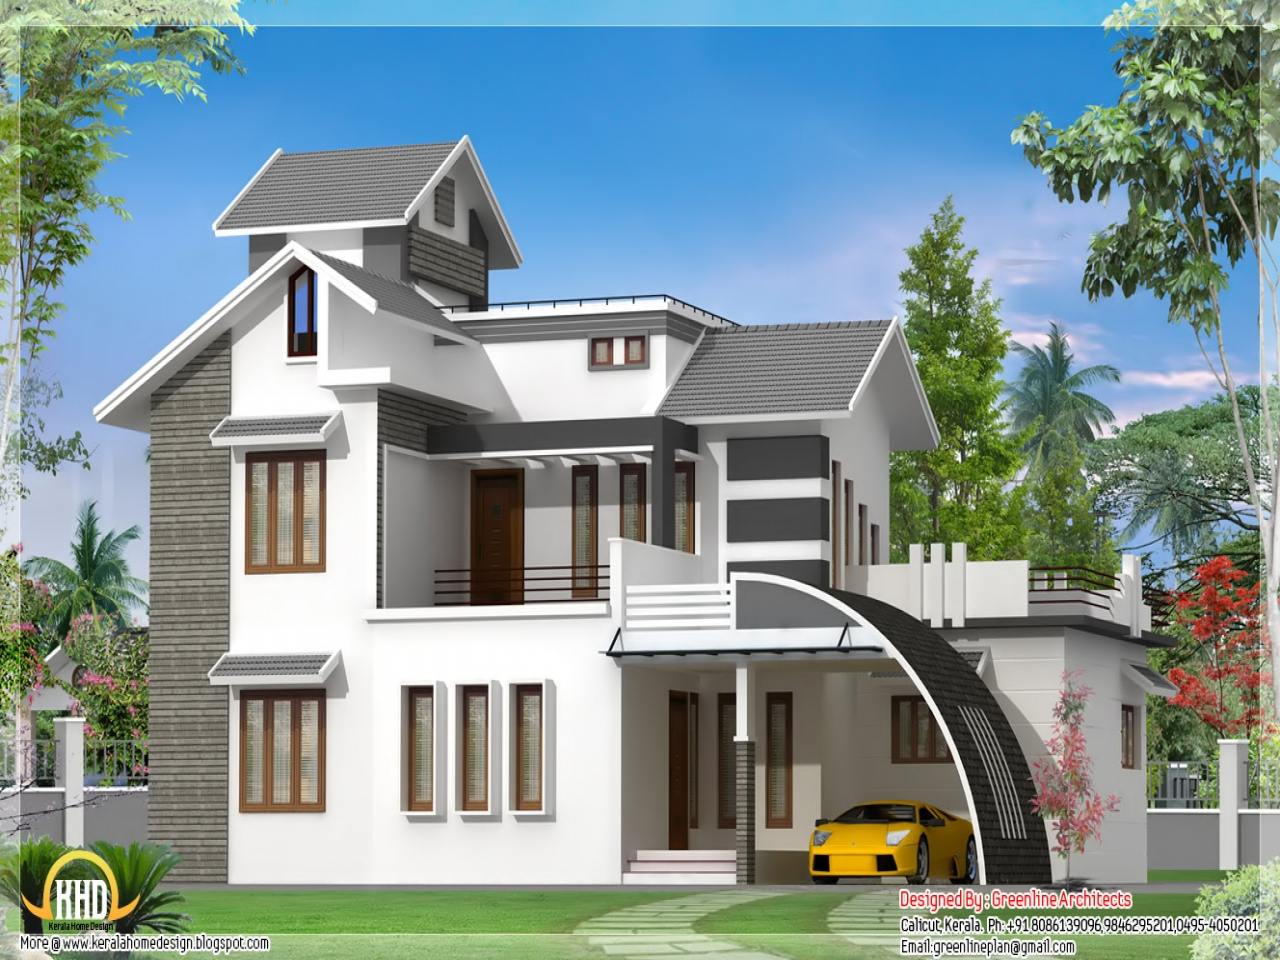 Small House Design Ideas India Small House Designs Indian Style House Design Modern